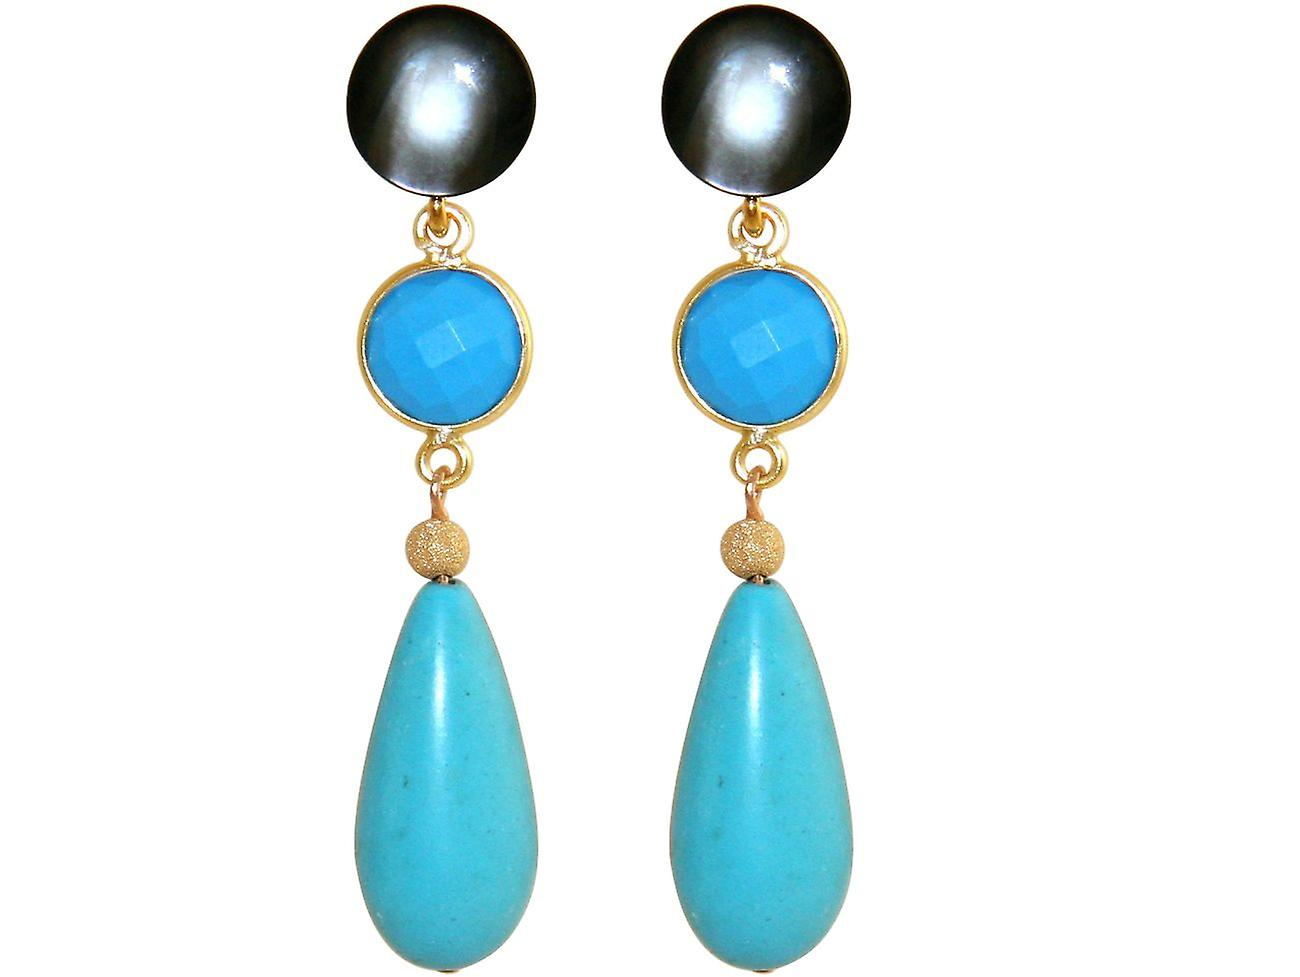 GEMSHINE earring with turquoise gems  Earrings made of 925 Silver or  high-quality gold-plated  Made in Munich, Germany  Delivered in the elegant